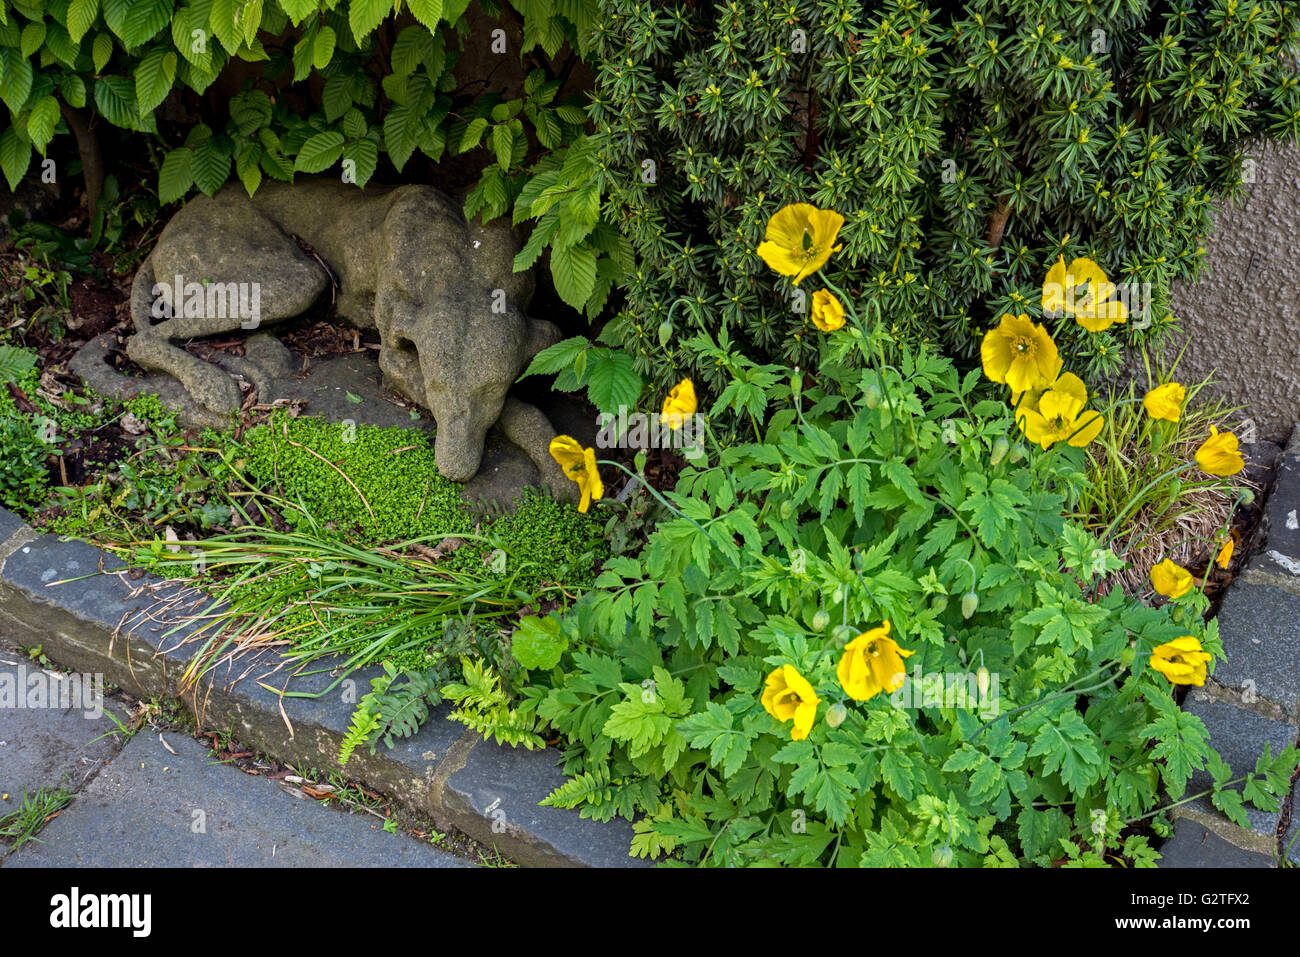 A stone sculpture of a sleeping dog next to some Icelandic poppies in Circus Lane, Stockbridge, Edinburgh, UK. - Stock Image